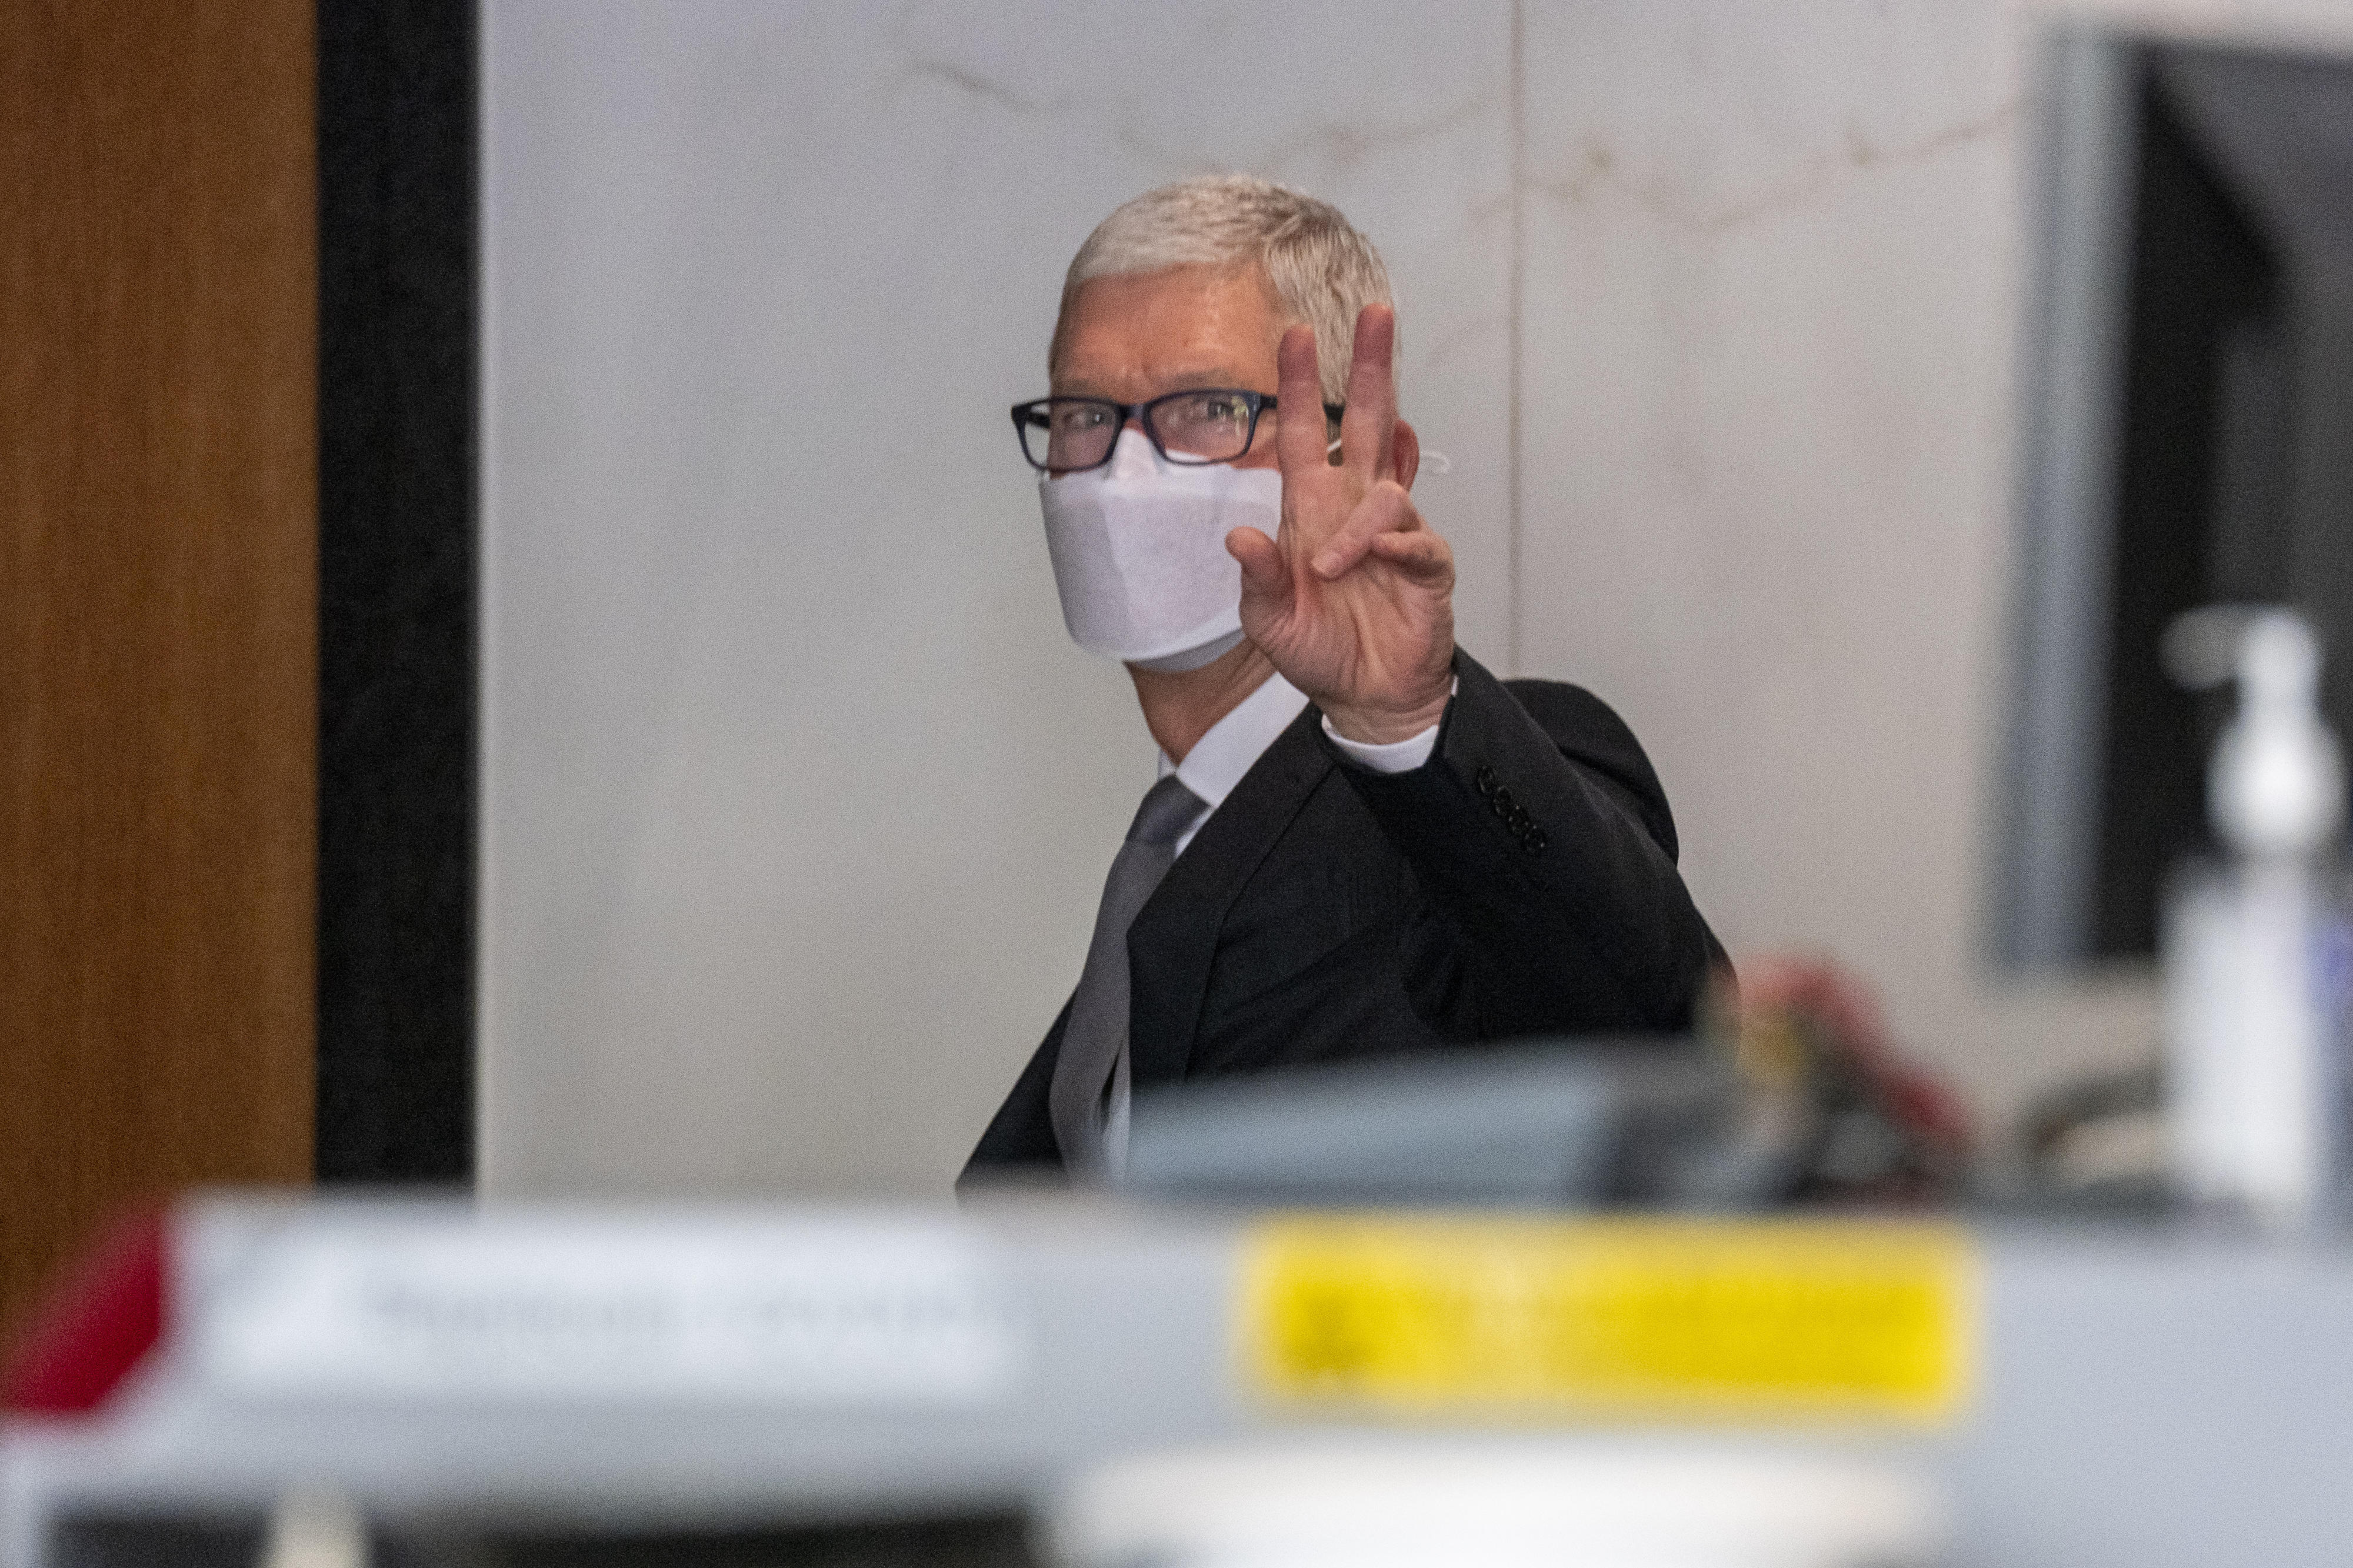 Apple CEO Tim Cook gestures while exiting US district court in Oakland, California, on Friday.